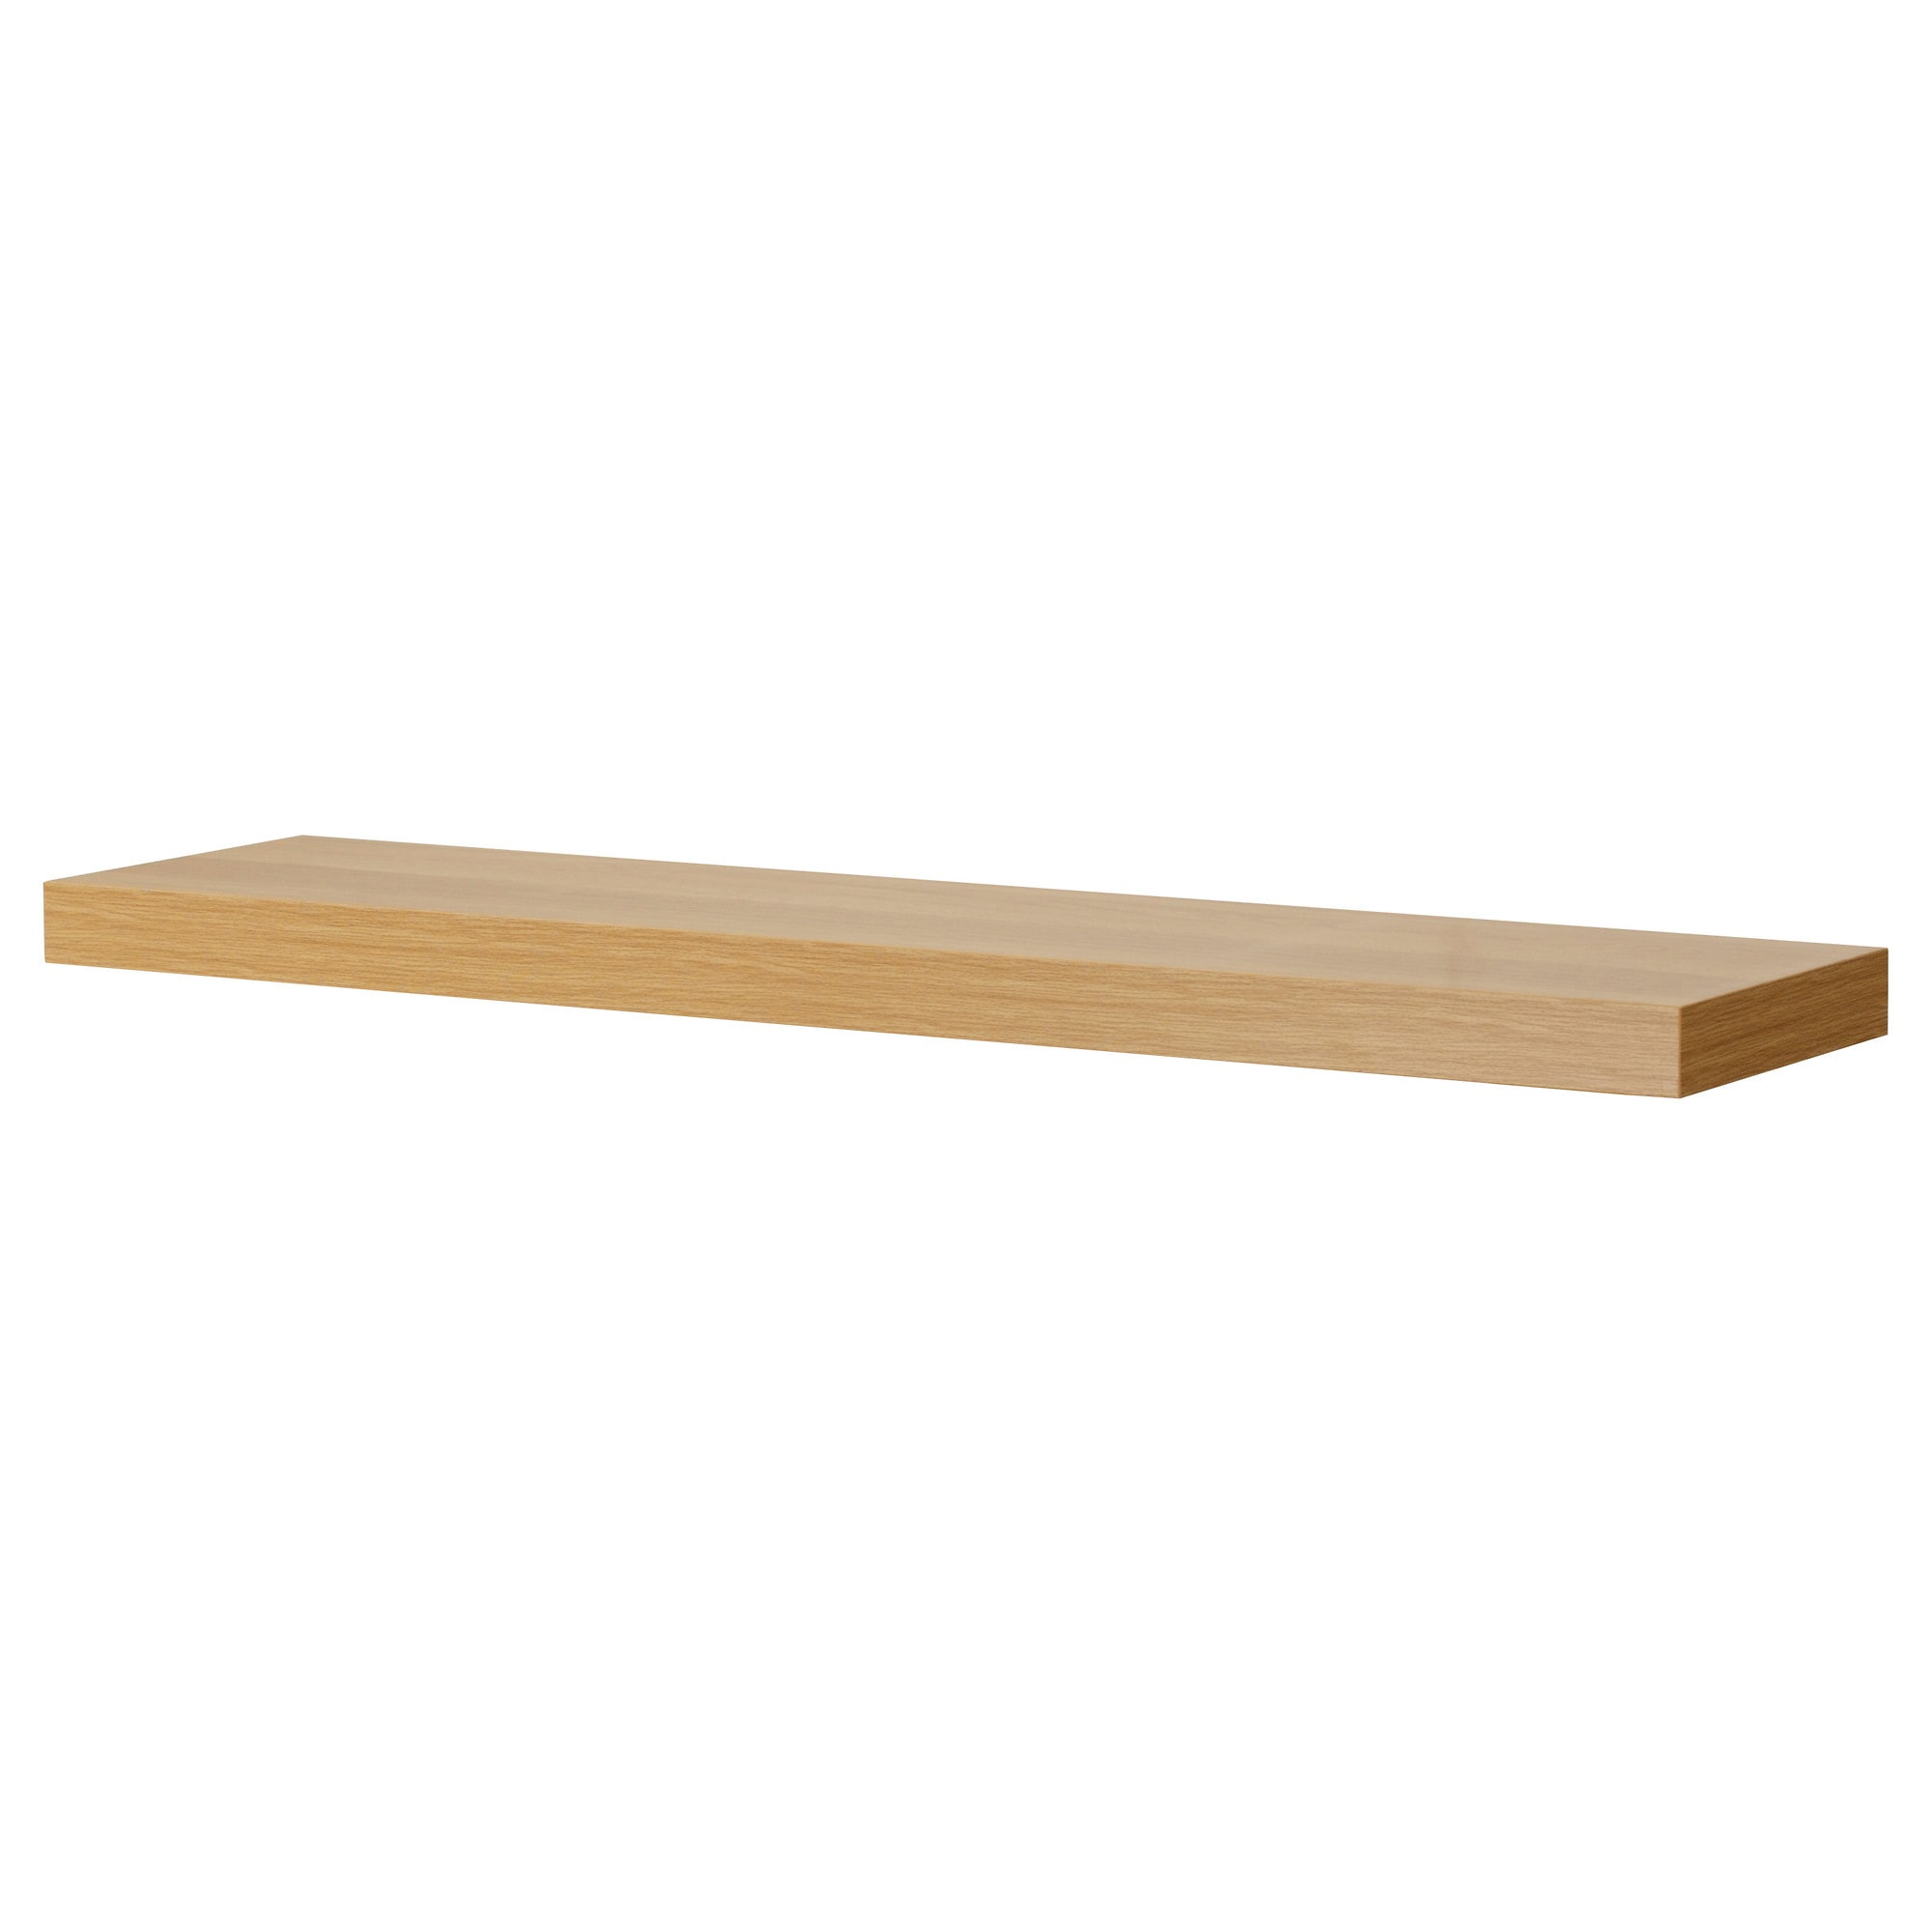 Incredible Wall Shelf Lack Oak Effect Download Free Architecture Designs Embacsunscenecom